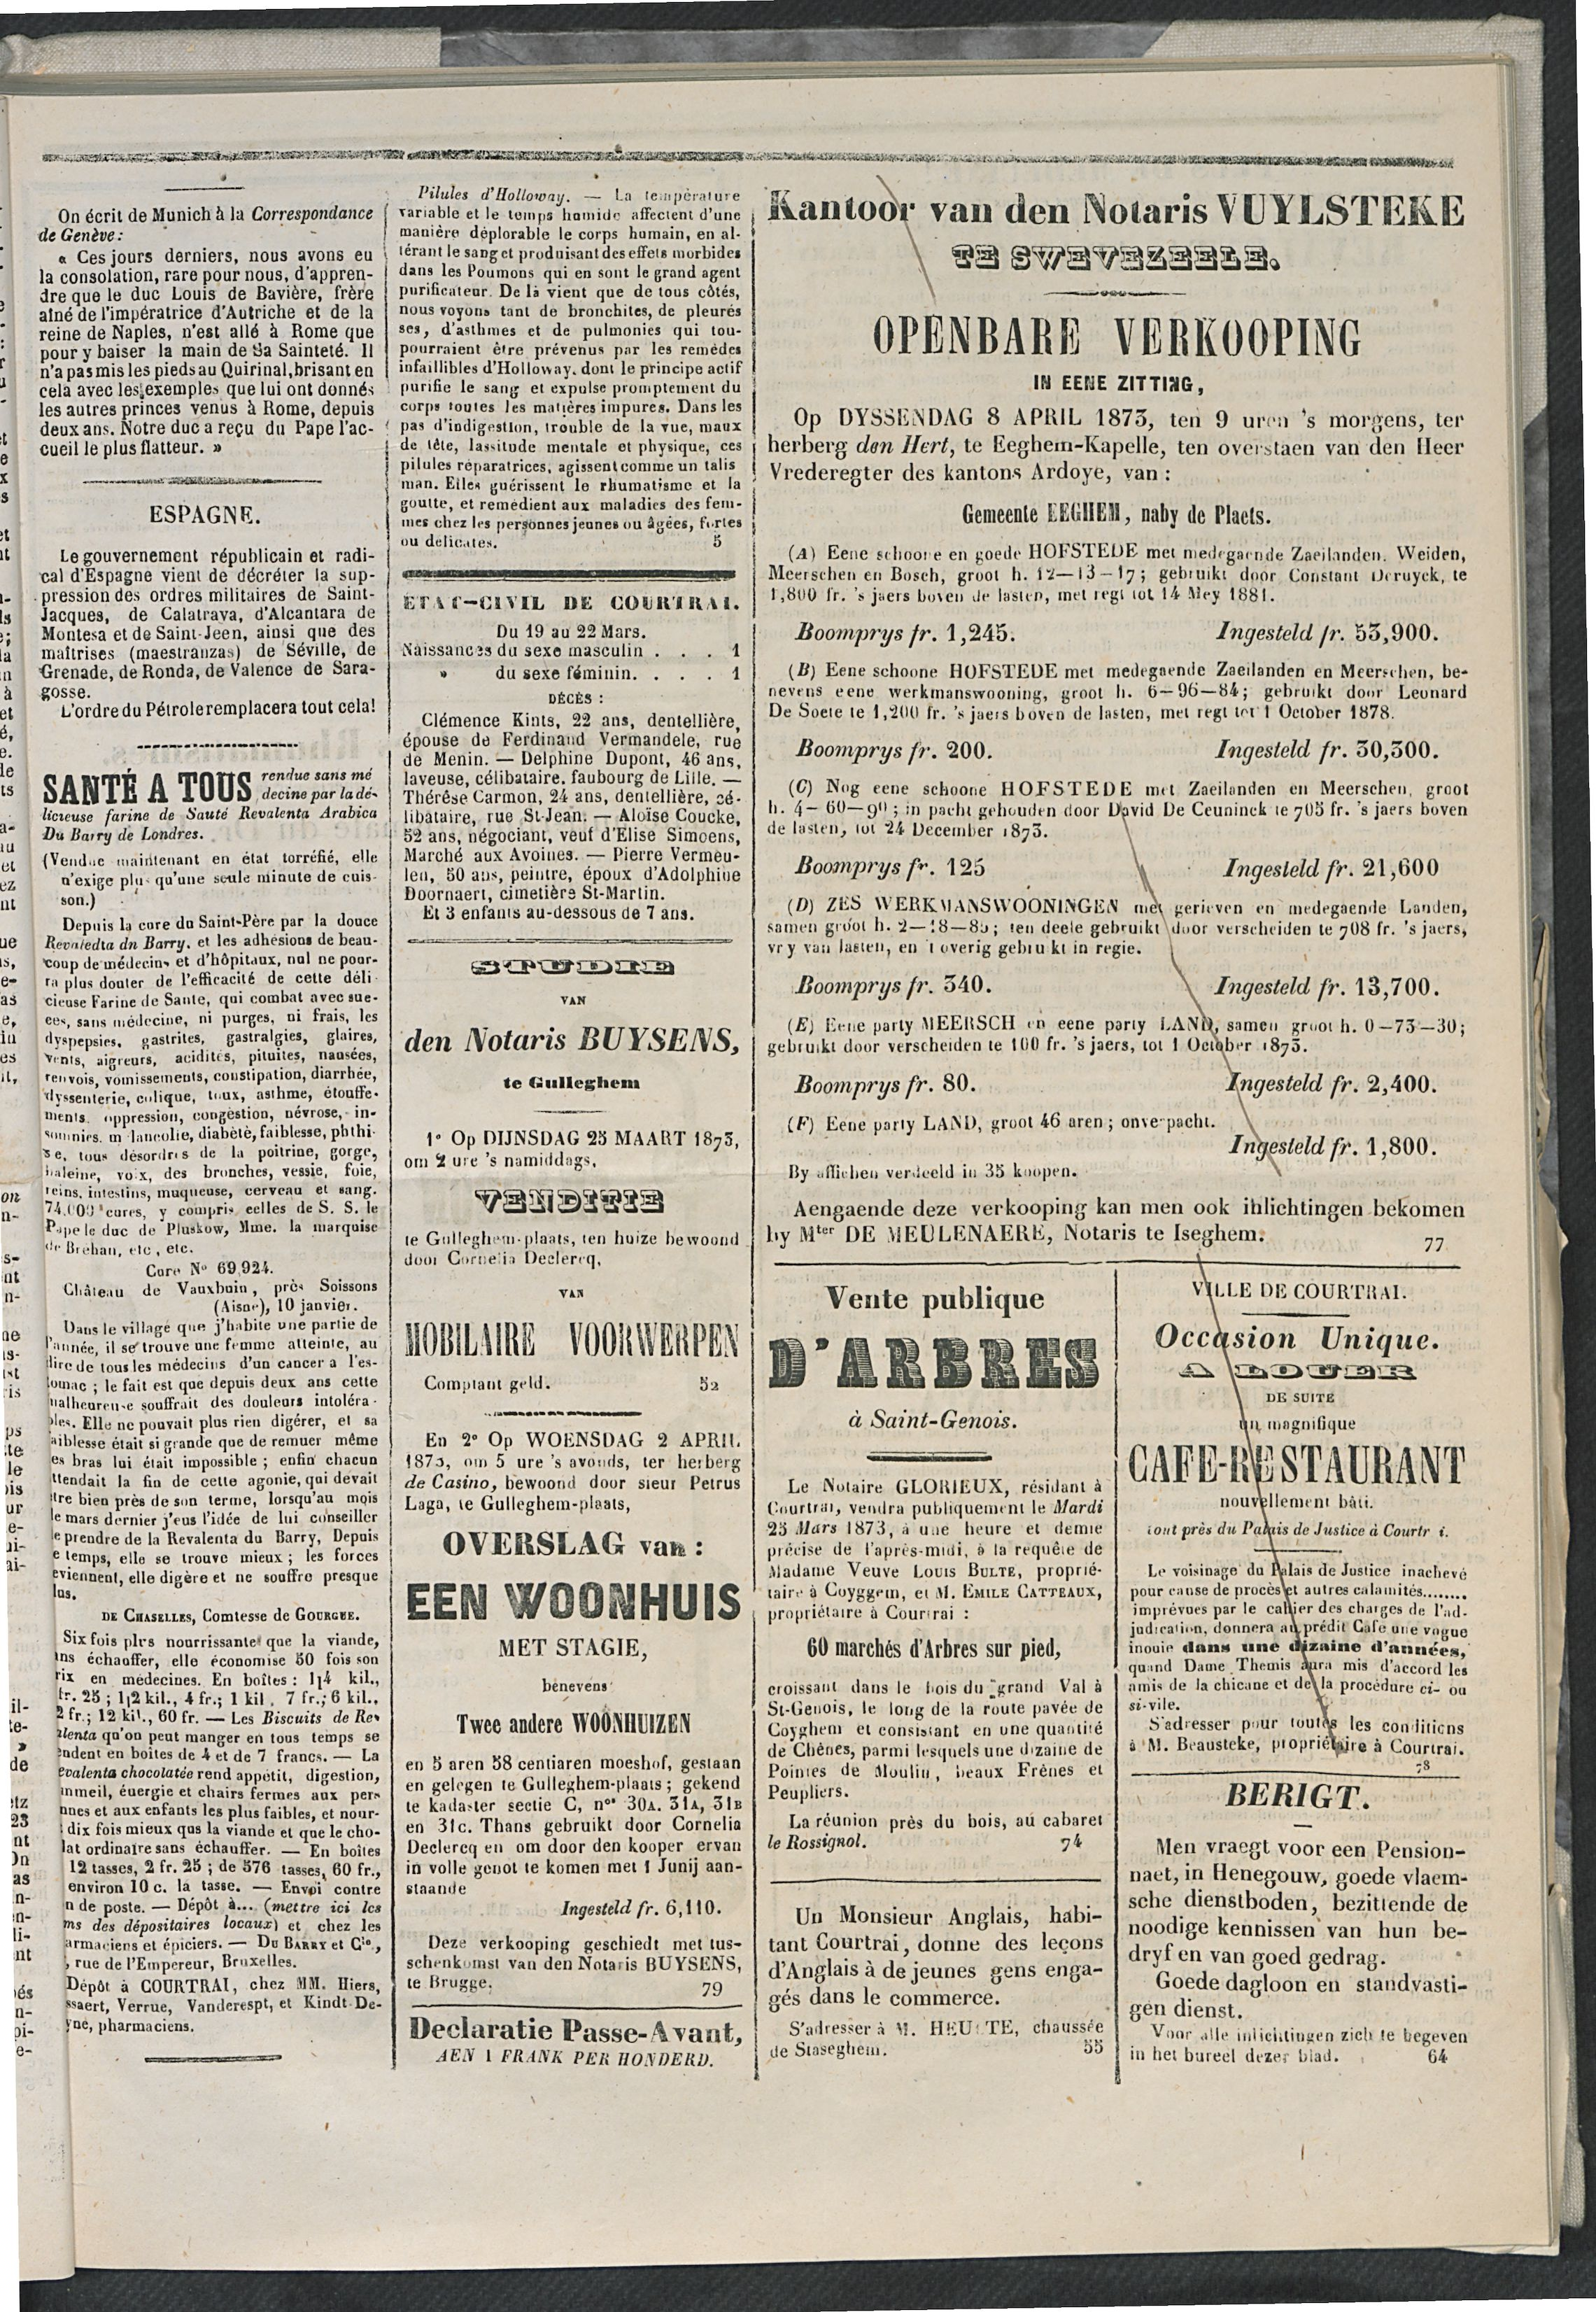 L'echo De Courtrai 1873-03-23 p3